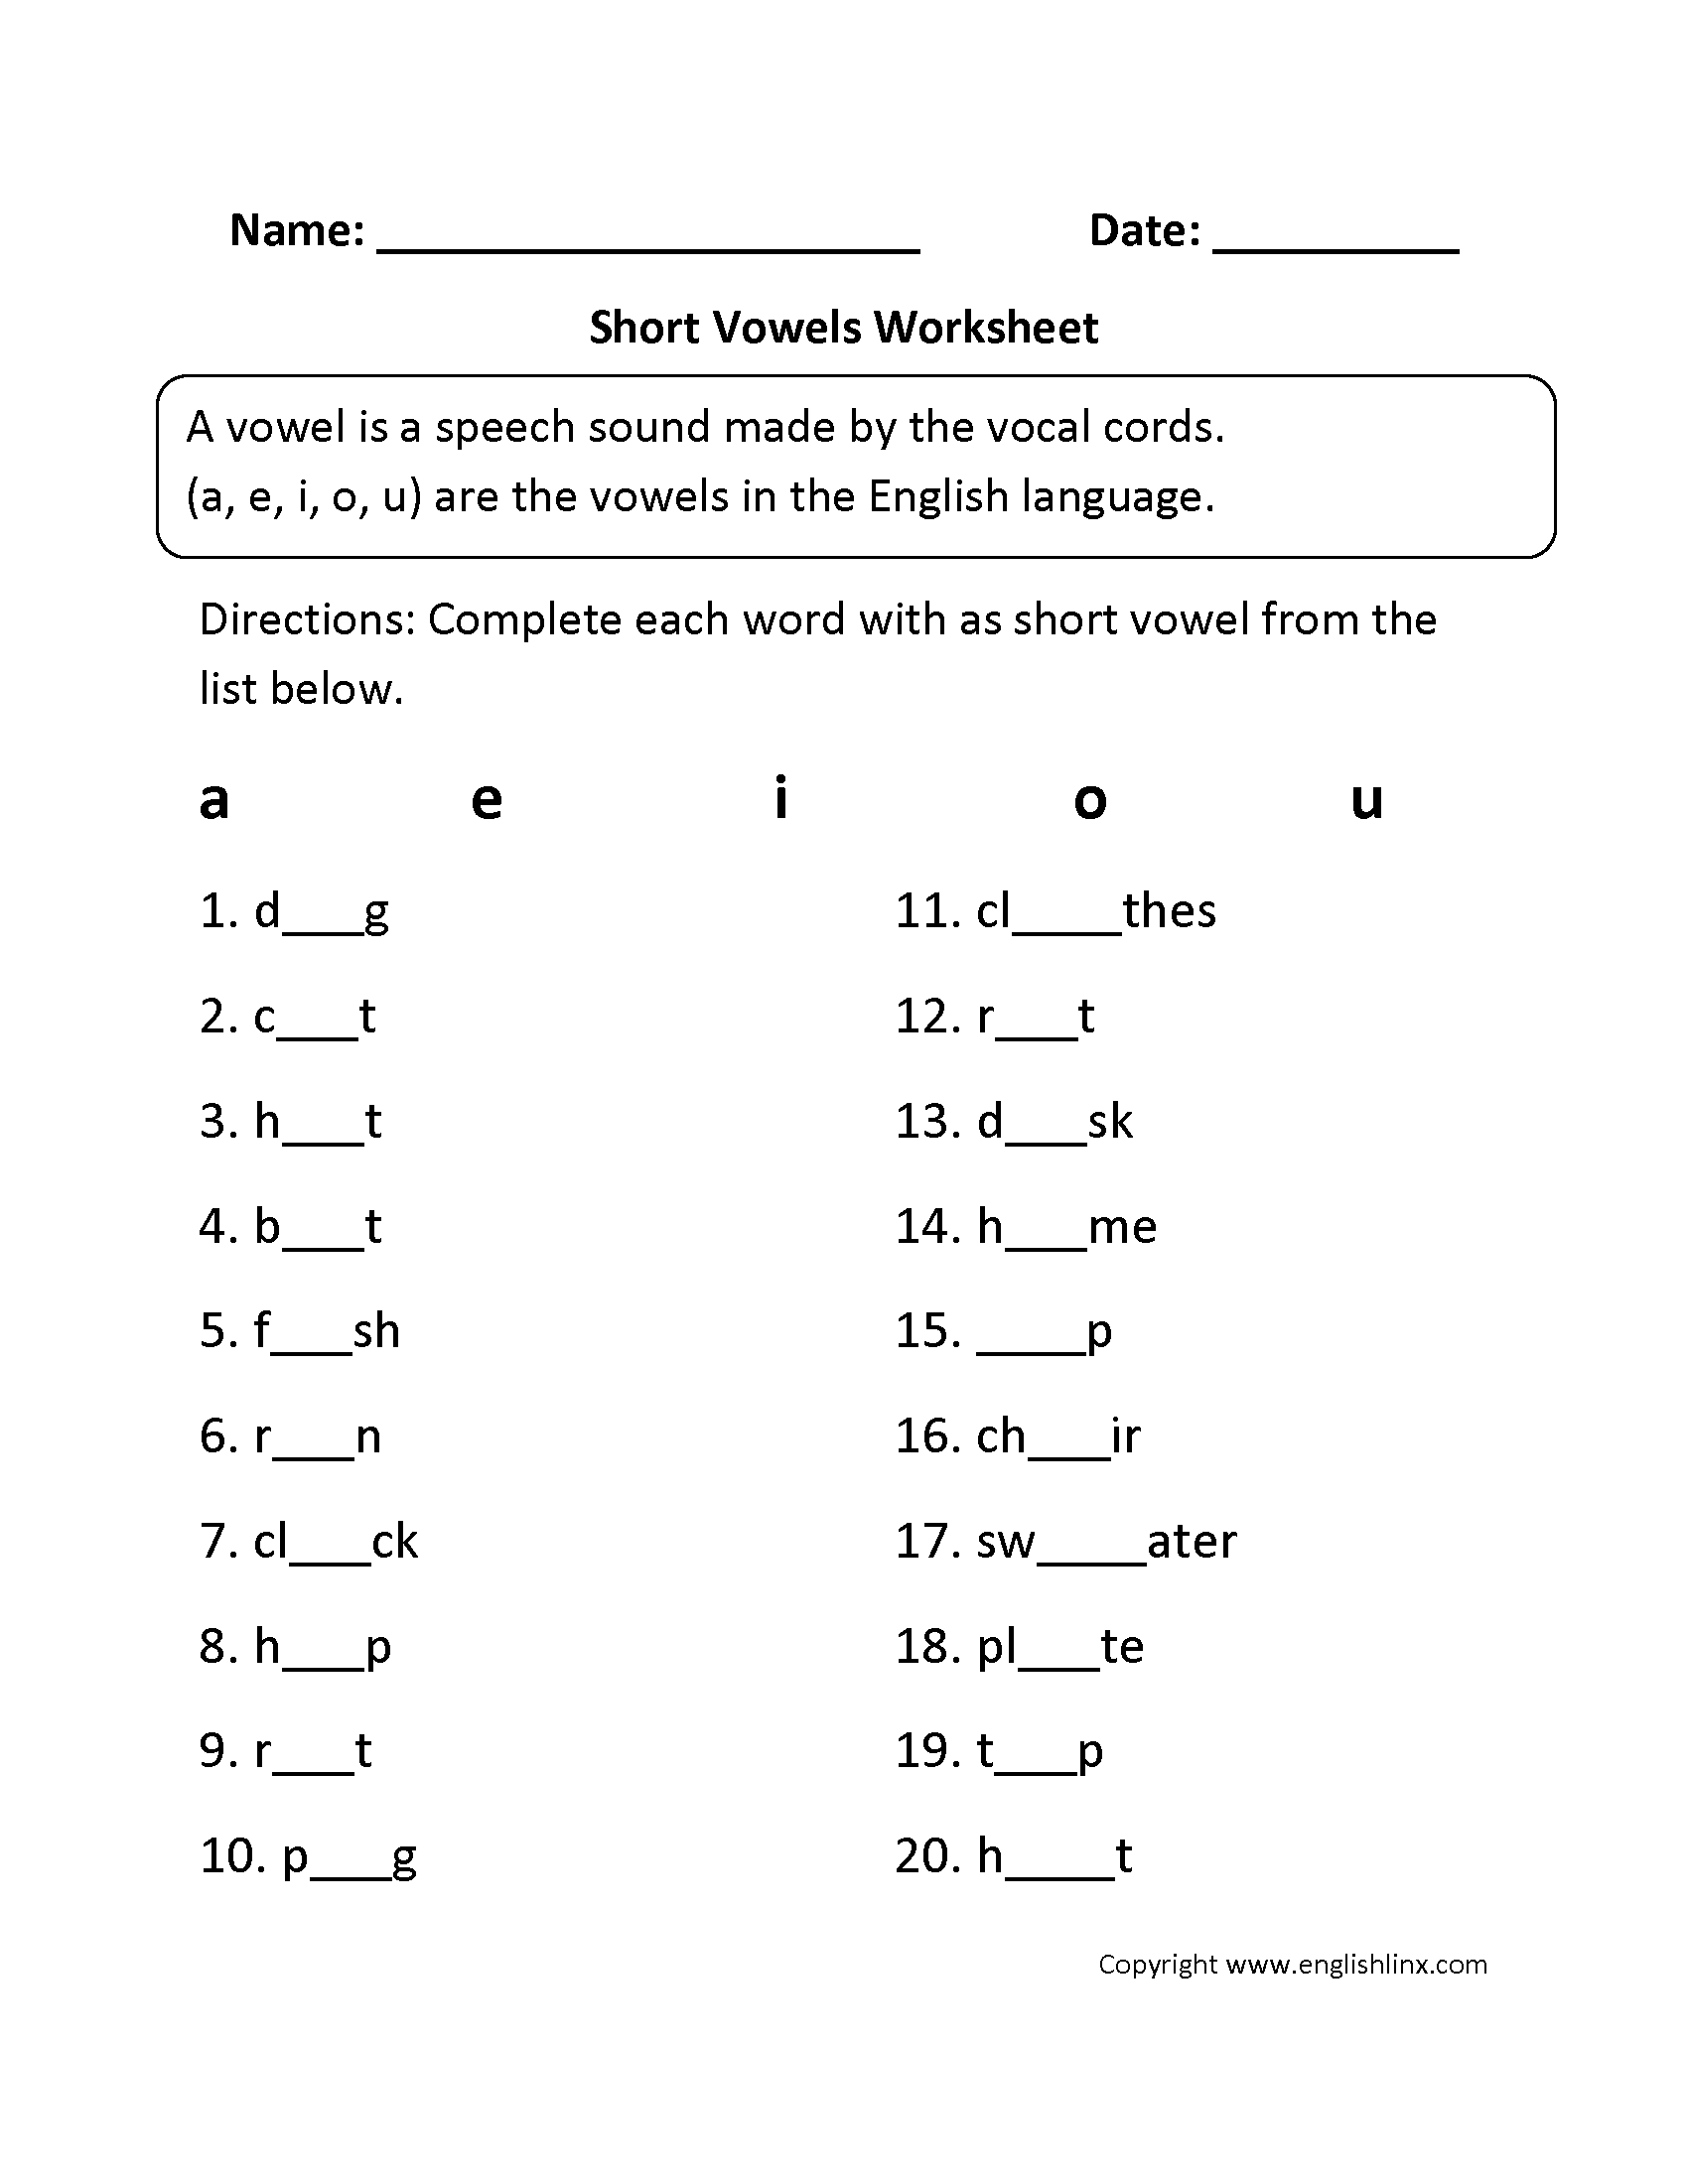 Short Vowel Worksheets 2nd Grade 274439